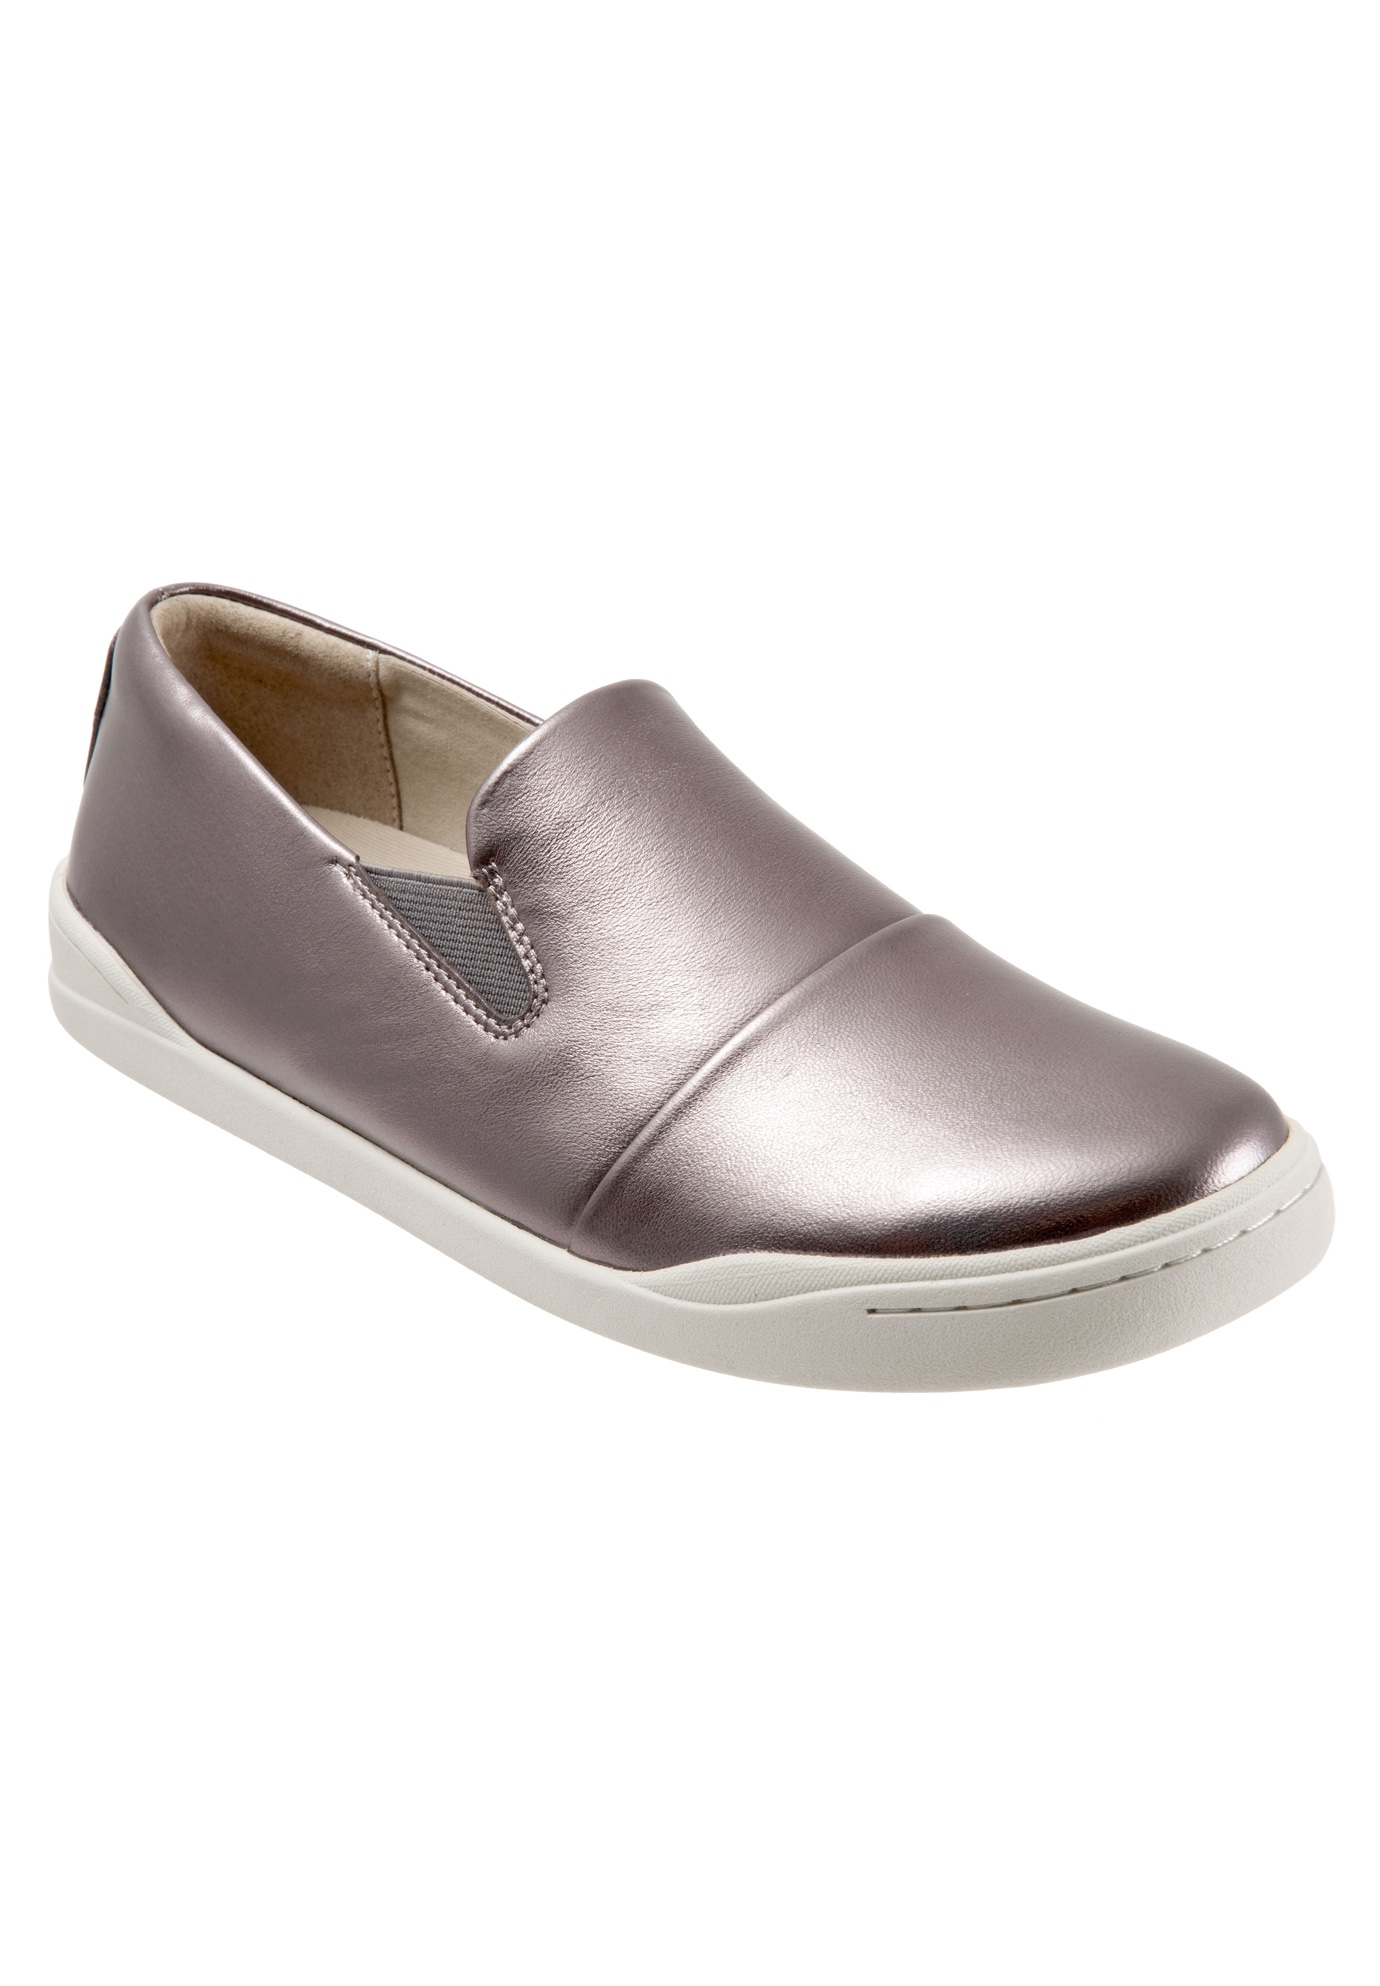 Alexandria Loafer,